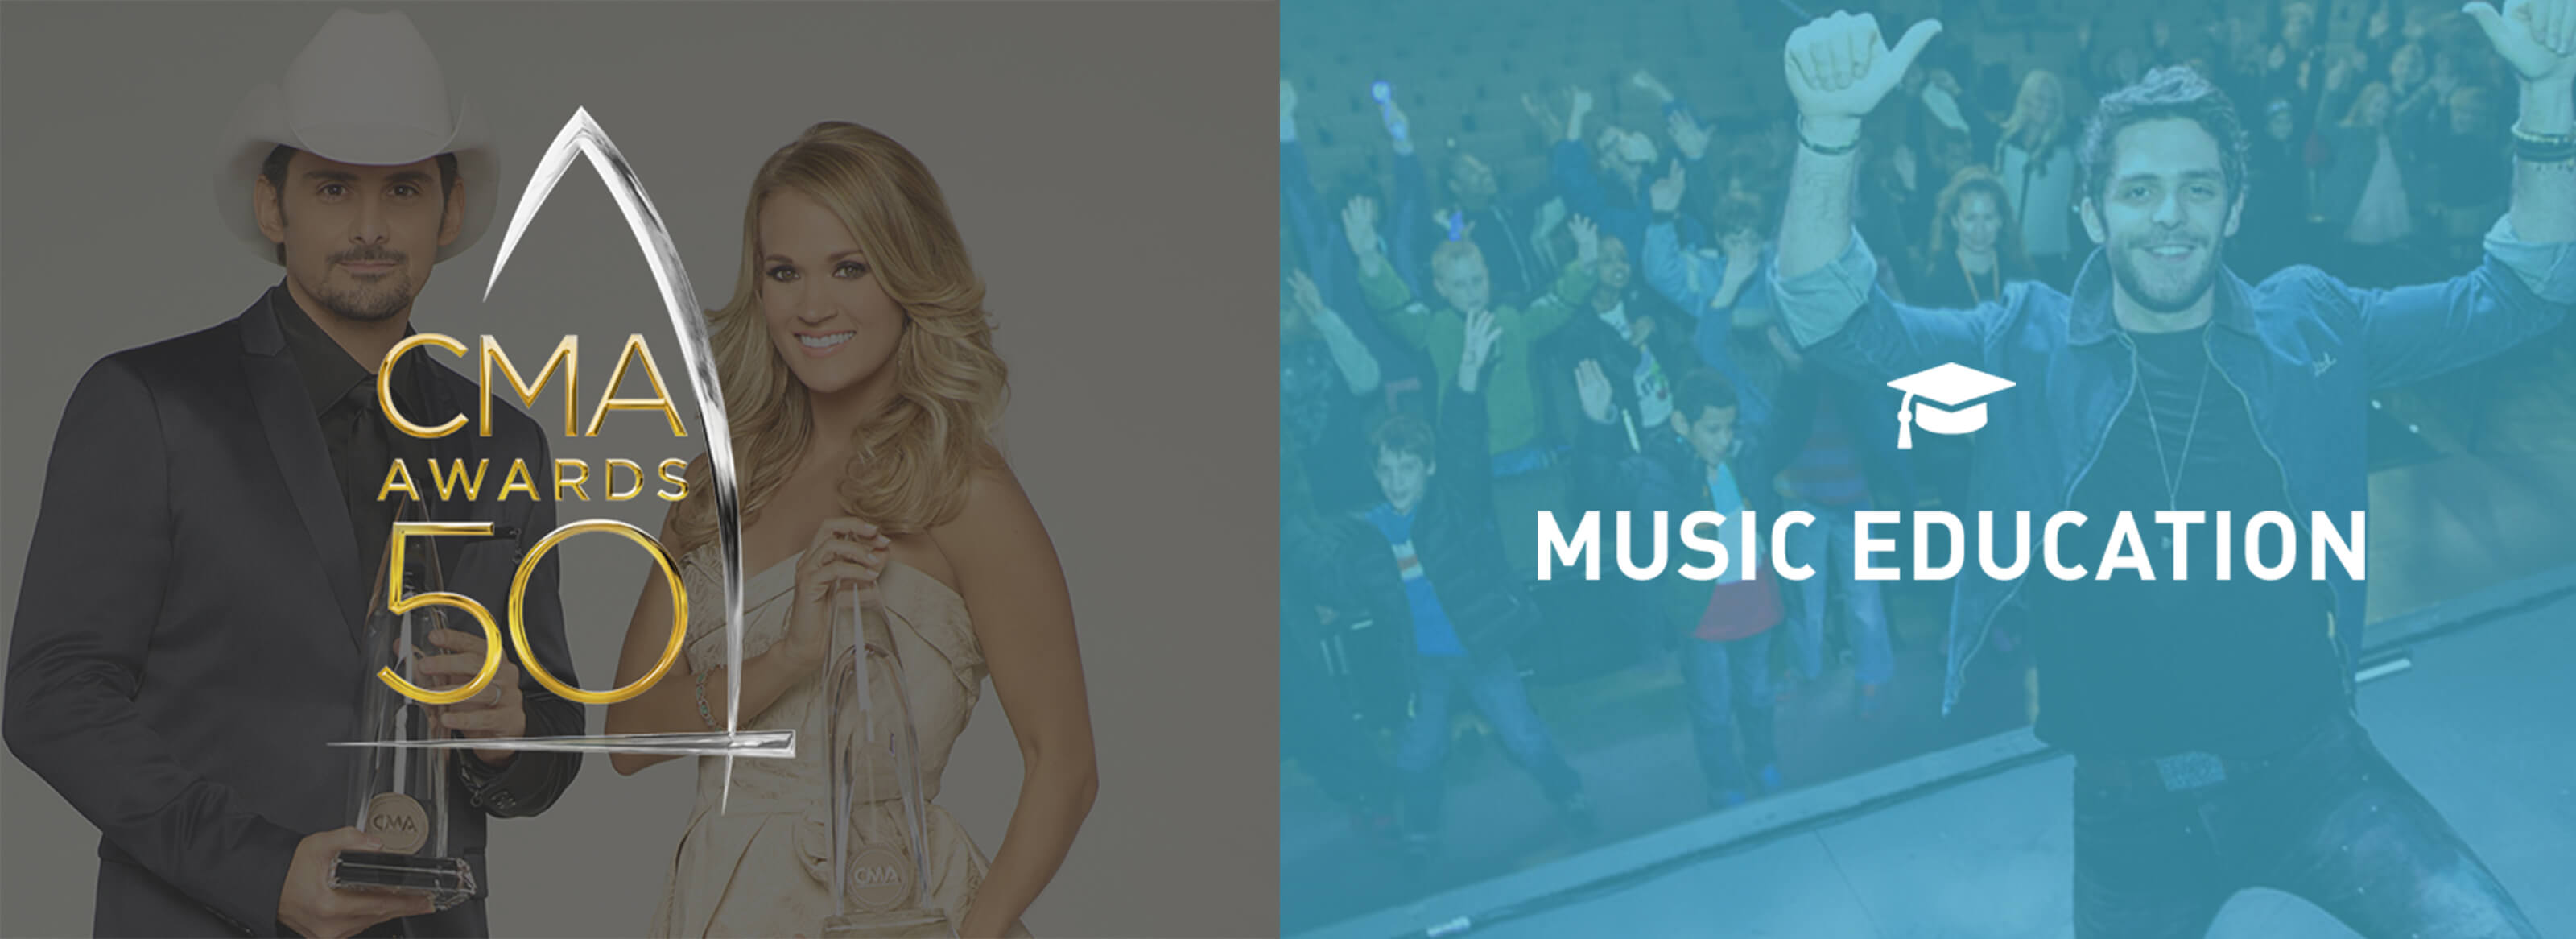 CMA 50th Awards with Carrie Underwood and Music Education pieces from CMA World web design for Ben Fieker's Fieker Brothers website